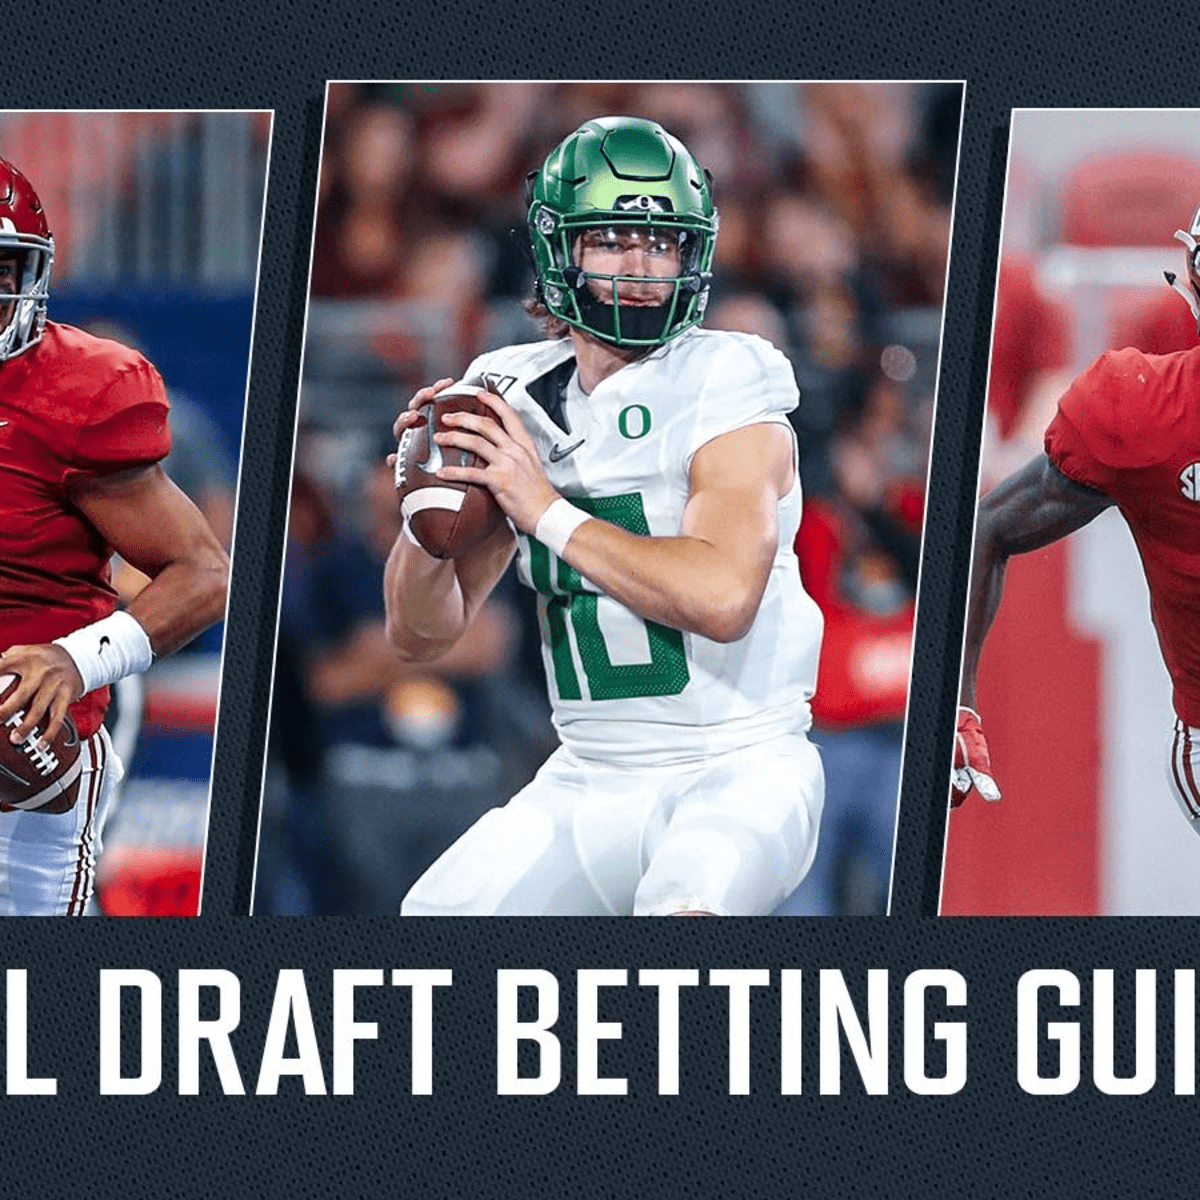 Nfl draft betting games for parties focus will smith betting scene